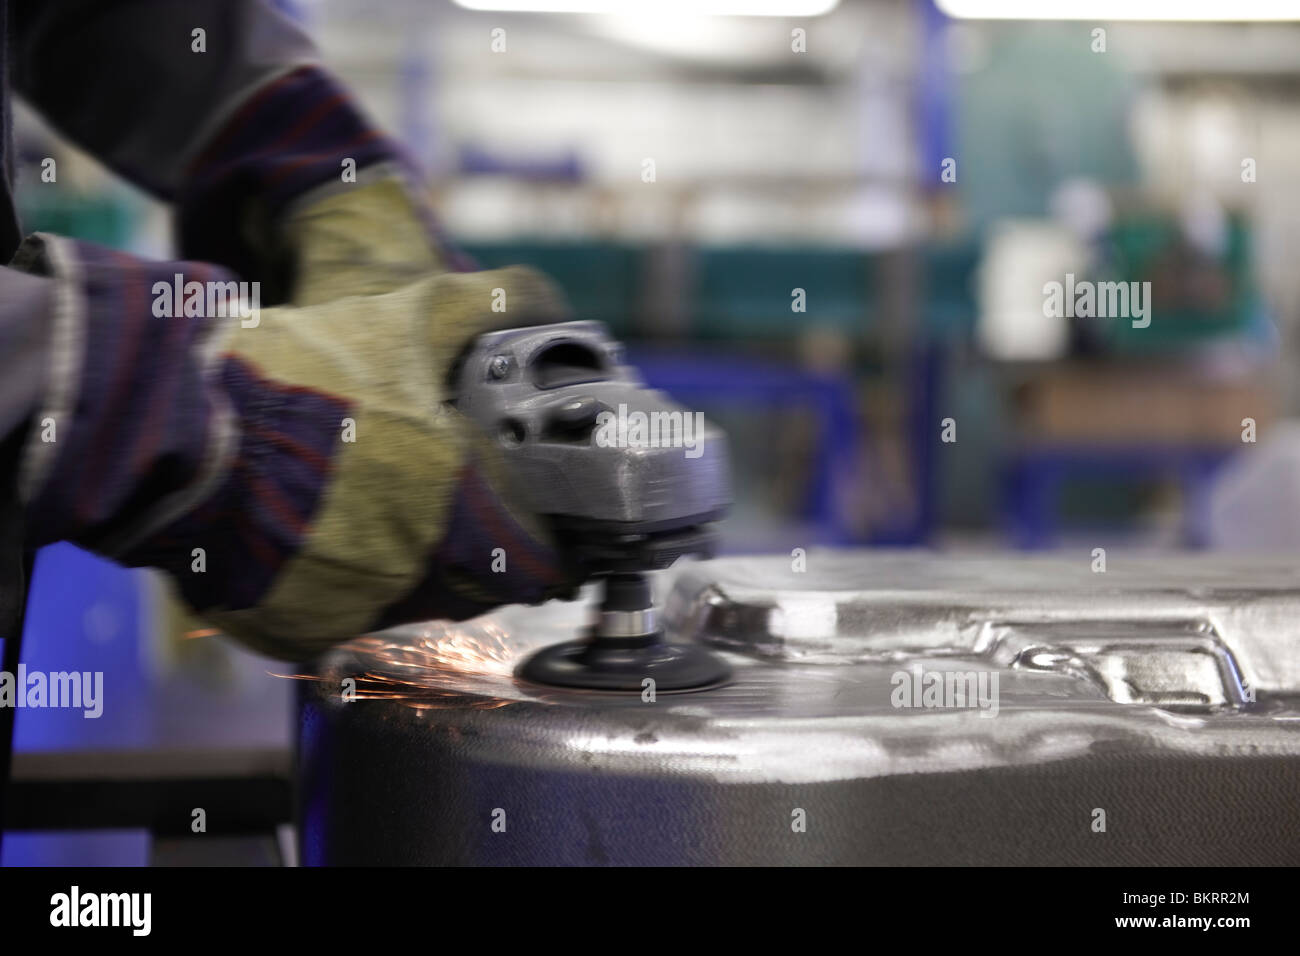 man using a angle grinder on metal surface with sparks - Stock Image